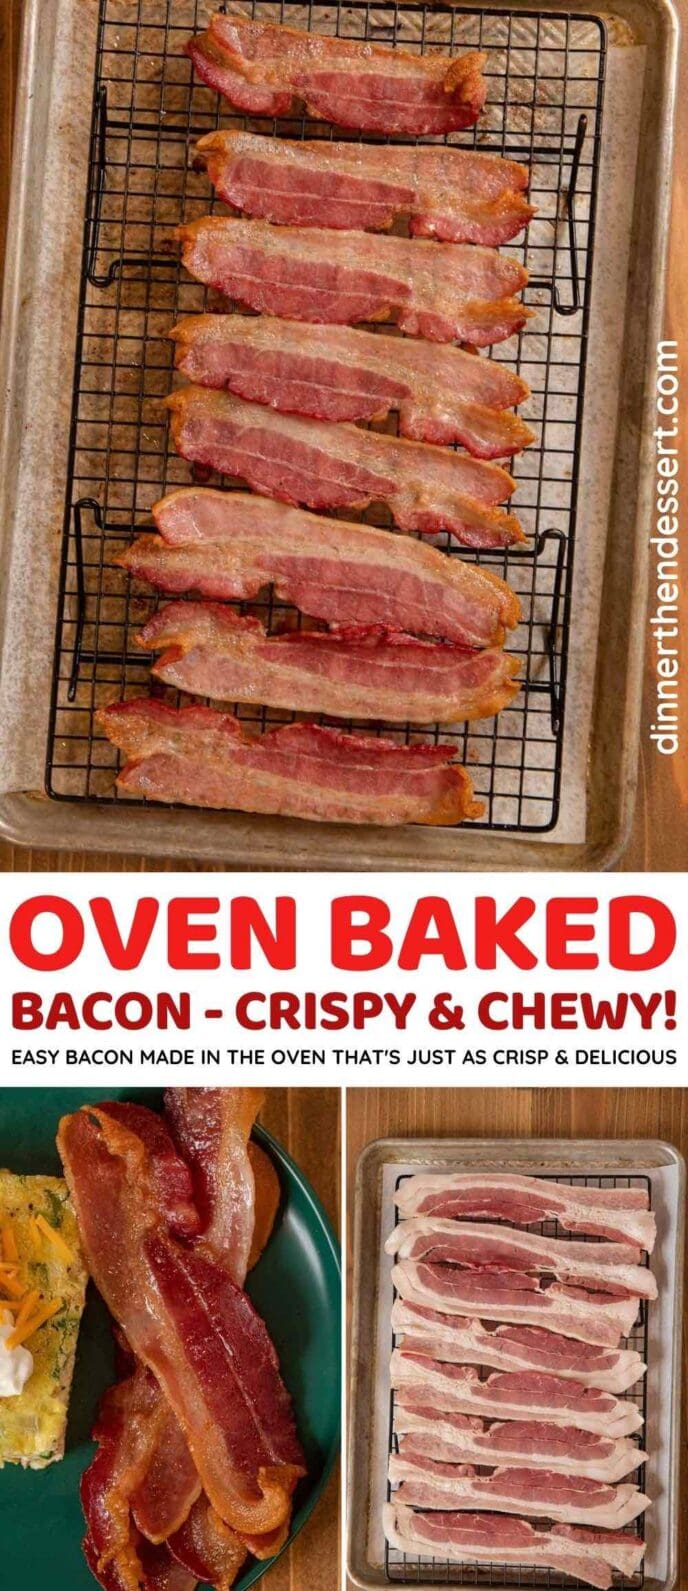 Oven-baked Bacon collage